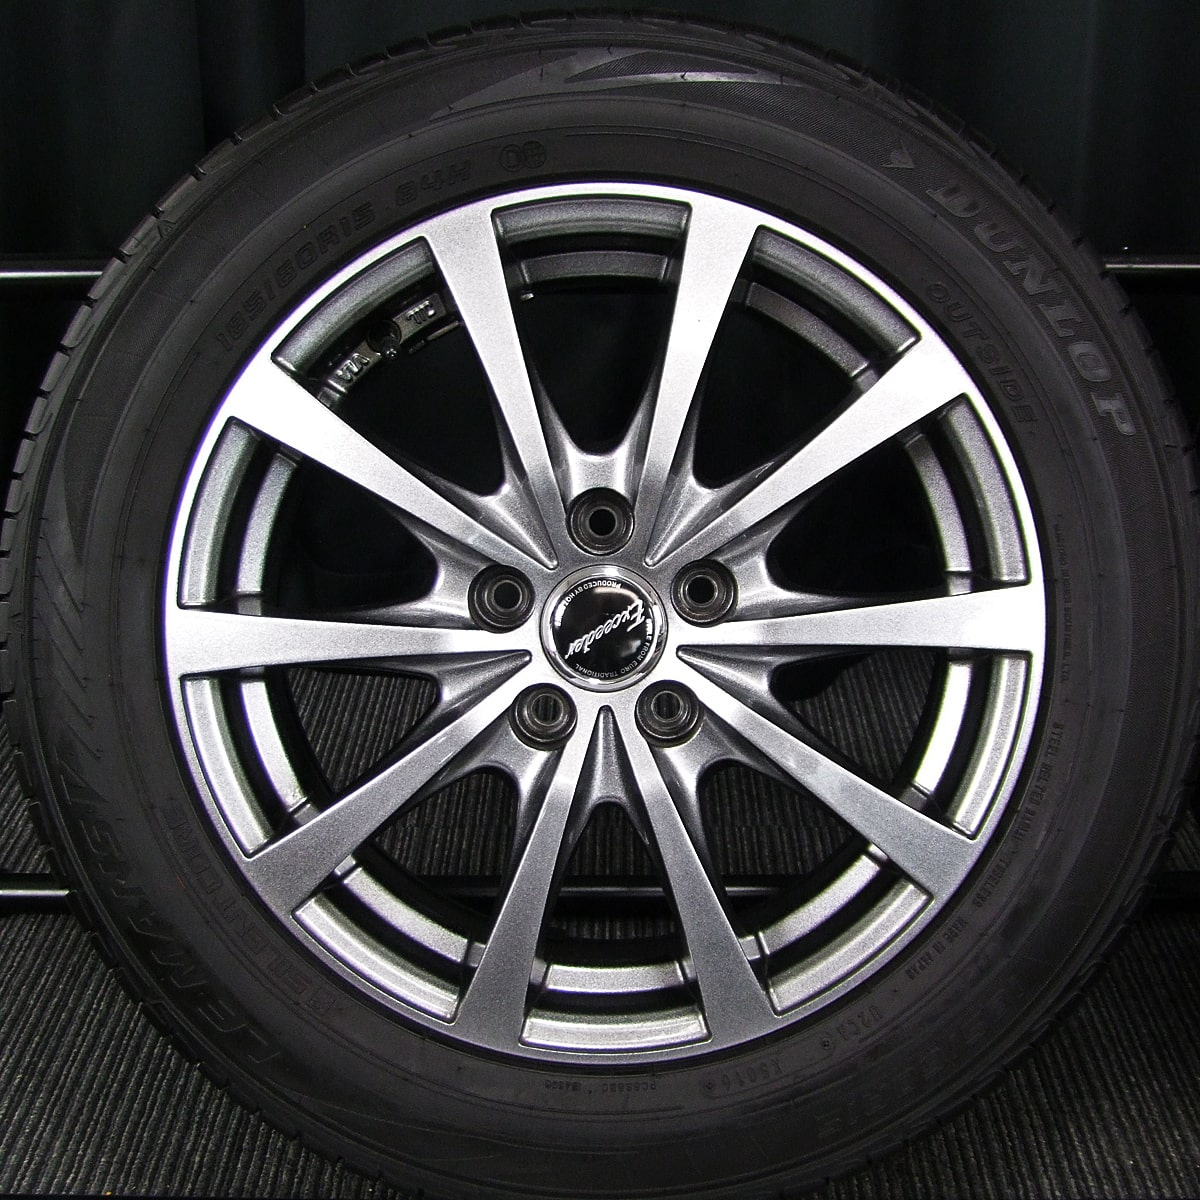 HOT STUFF Exceeder E03 ダークシルバー DUNLOP LE MANS V 185/60R15 4本SET